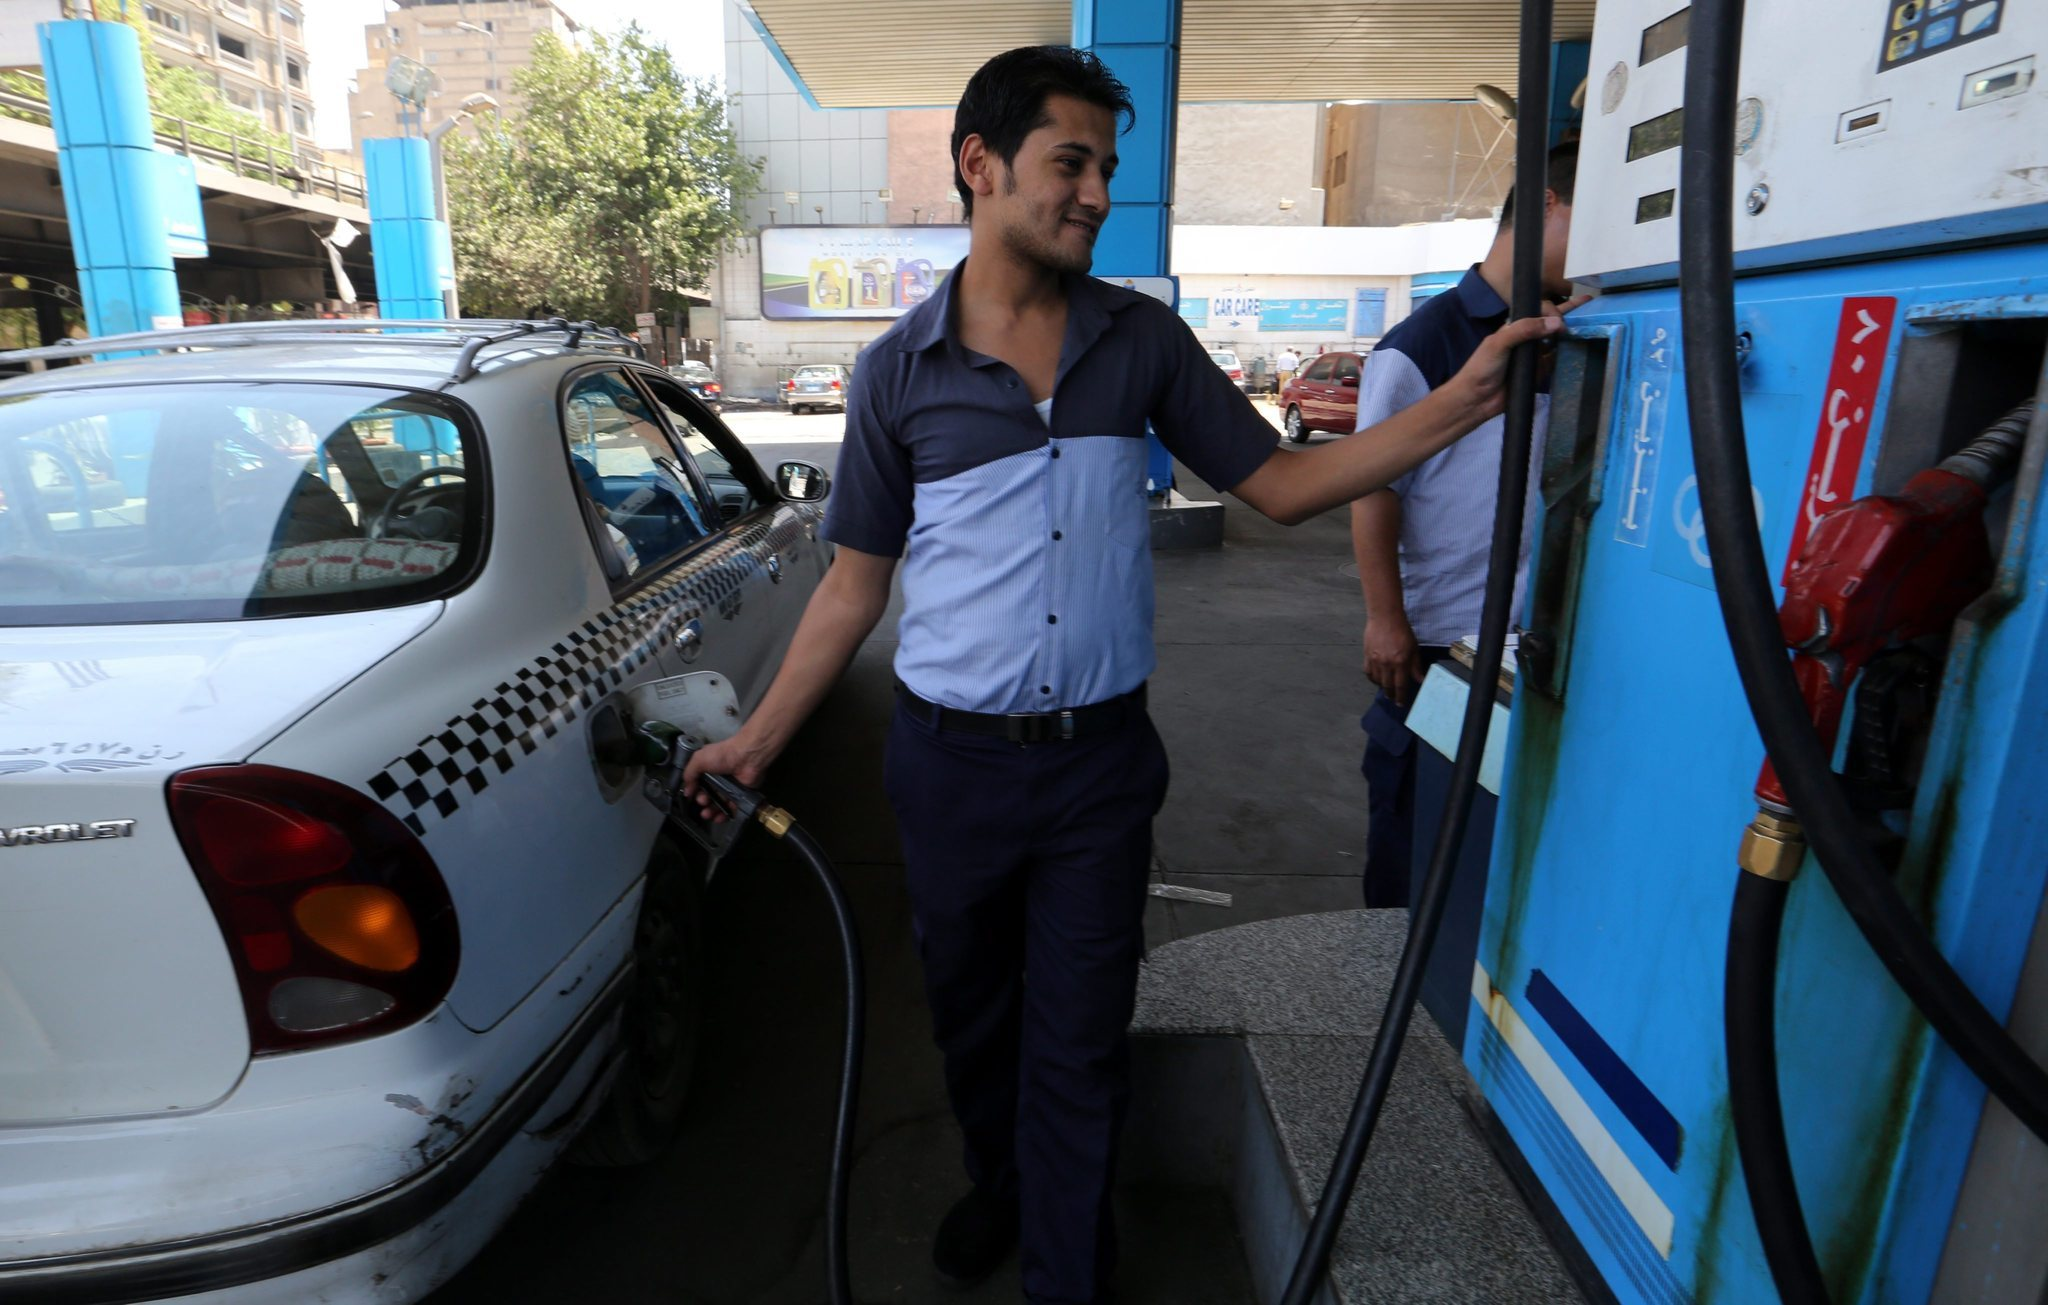 la-fg-egypt-gas-prices-soar-egyptian-public-exasperated-20140705